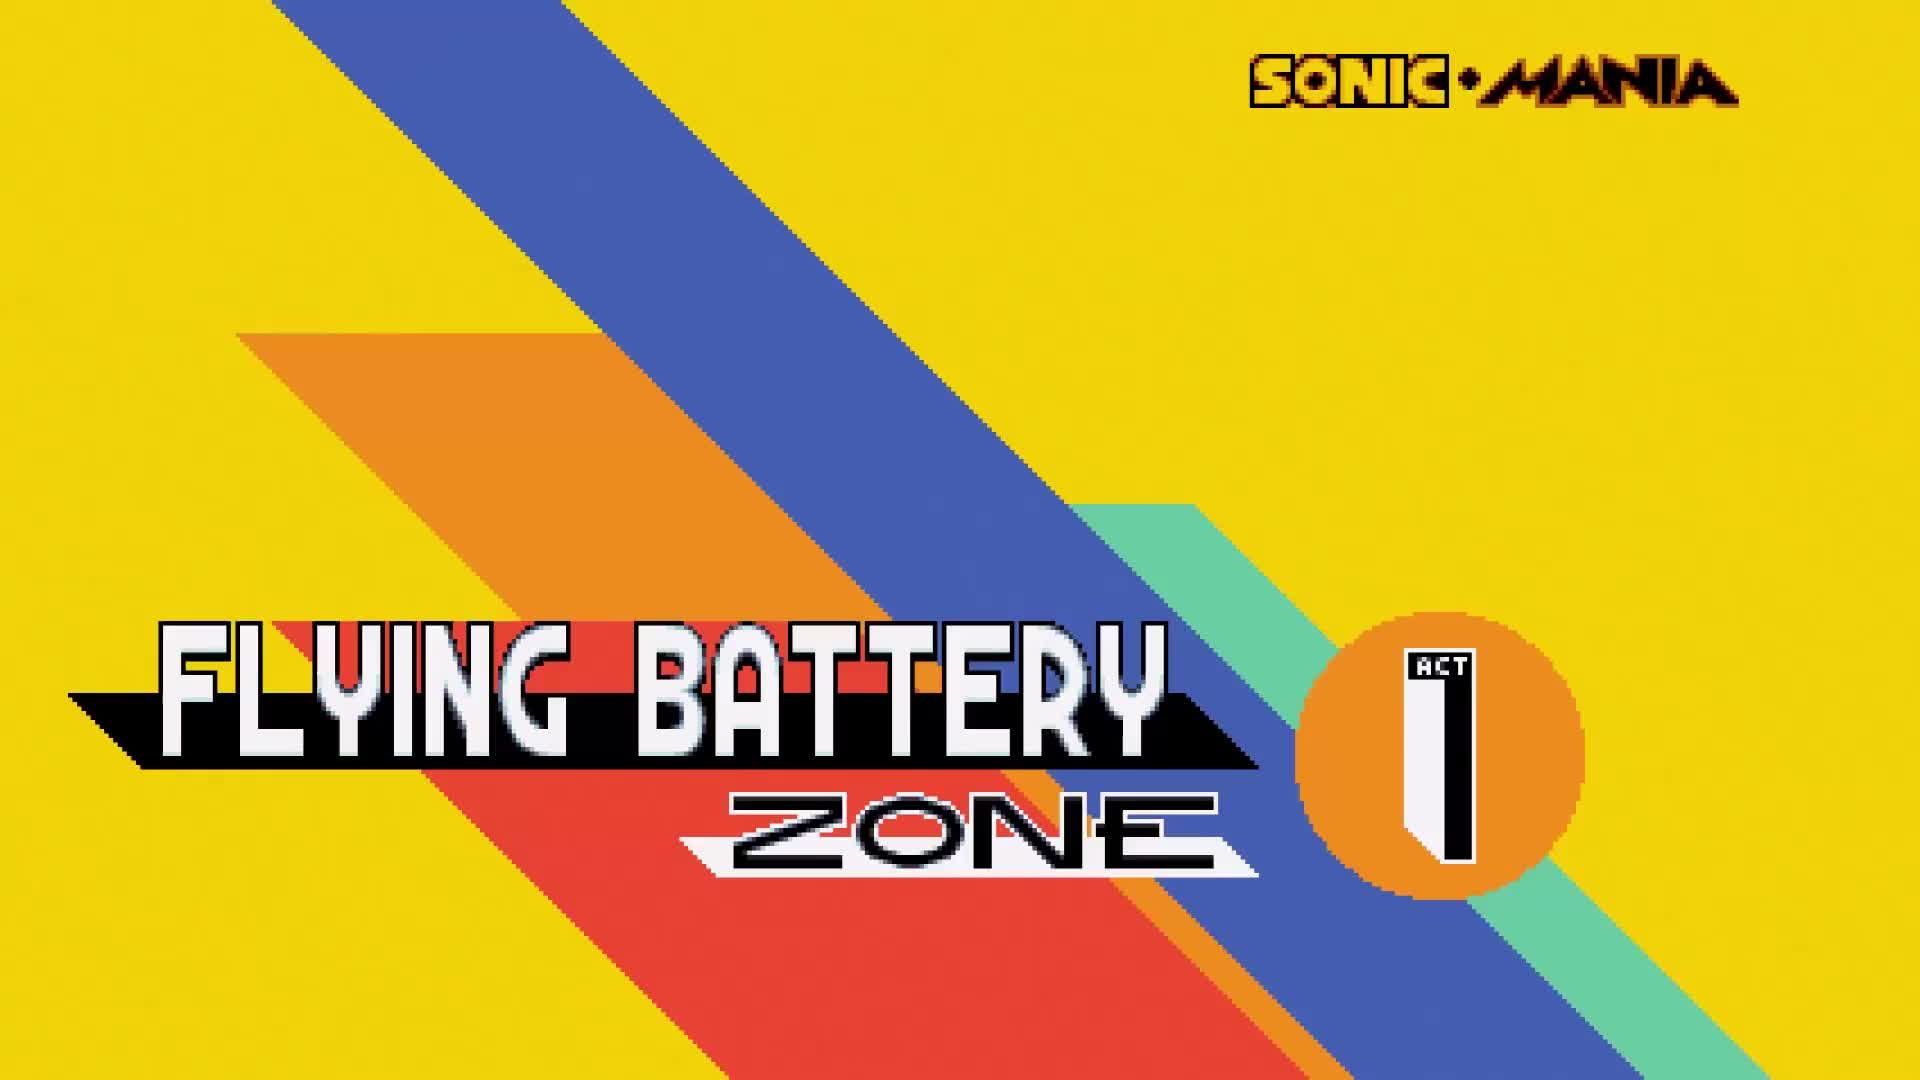 Sonic Mania Flying Battery Zone Gifs Search | Search & Share on Homdor